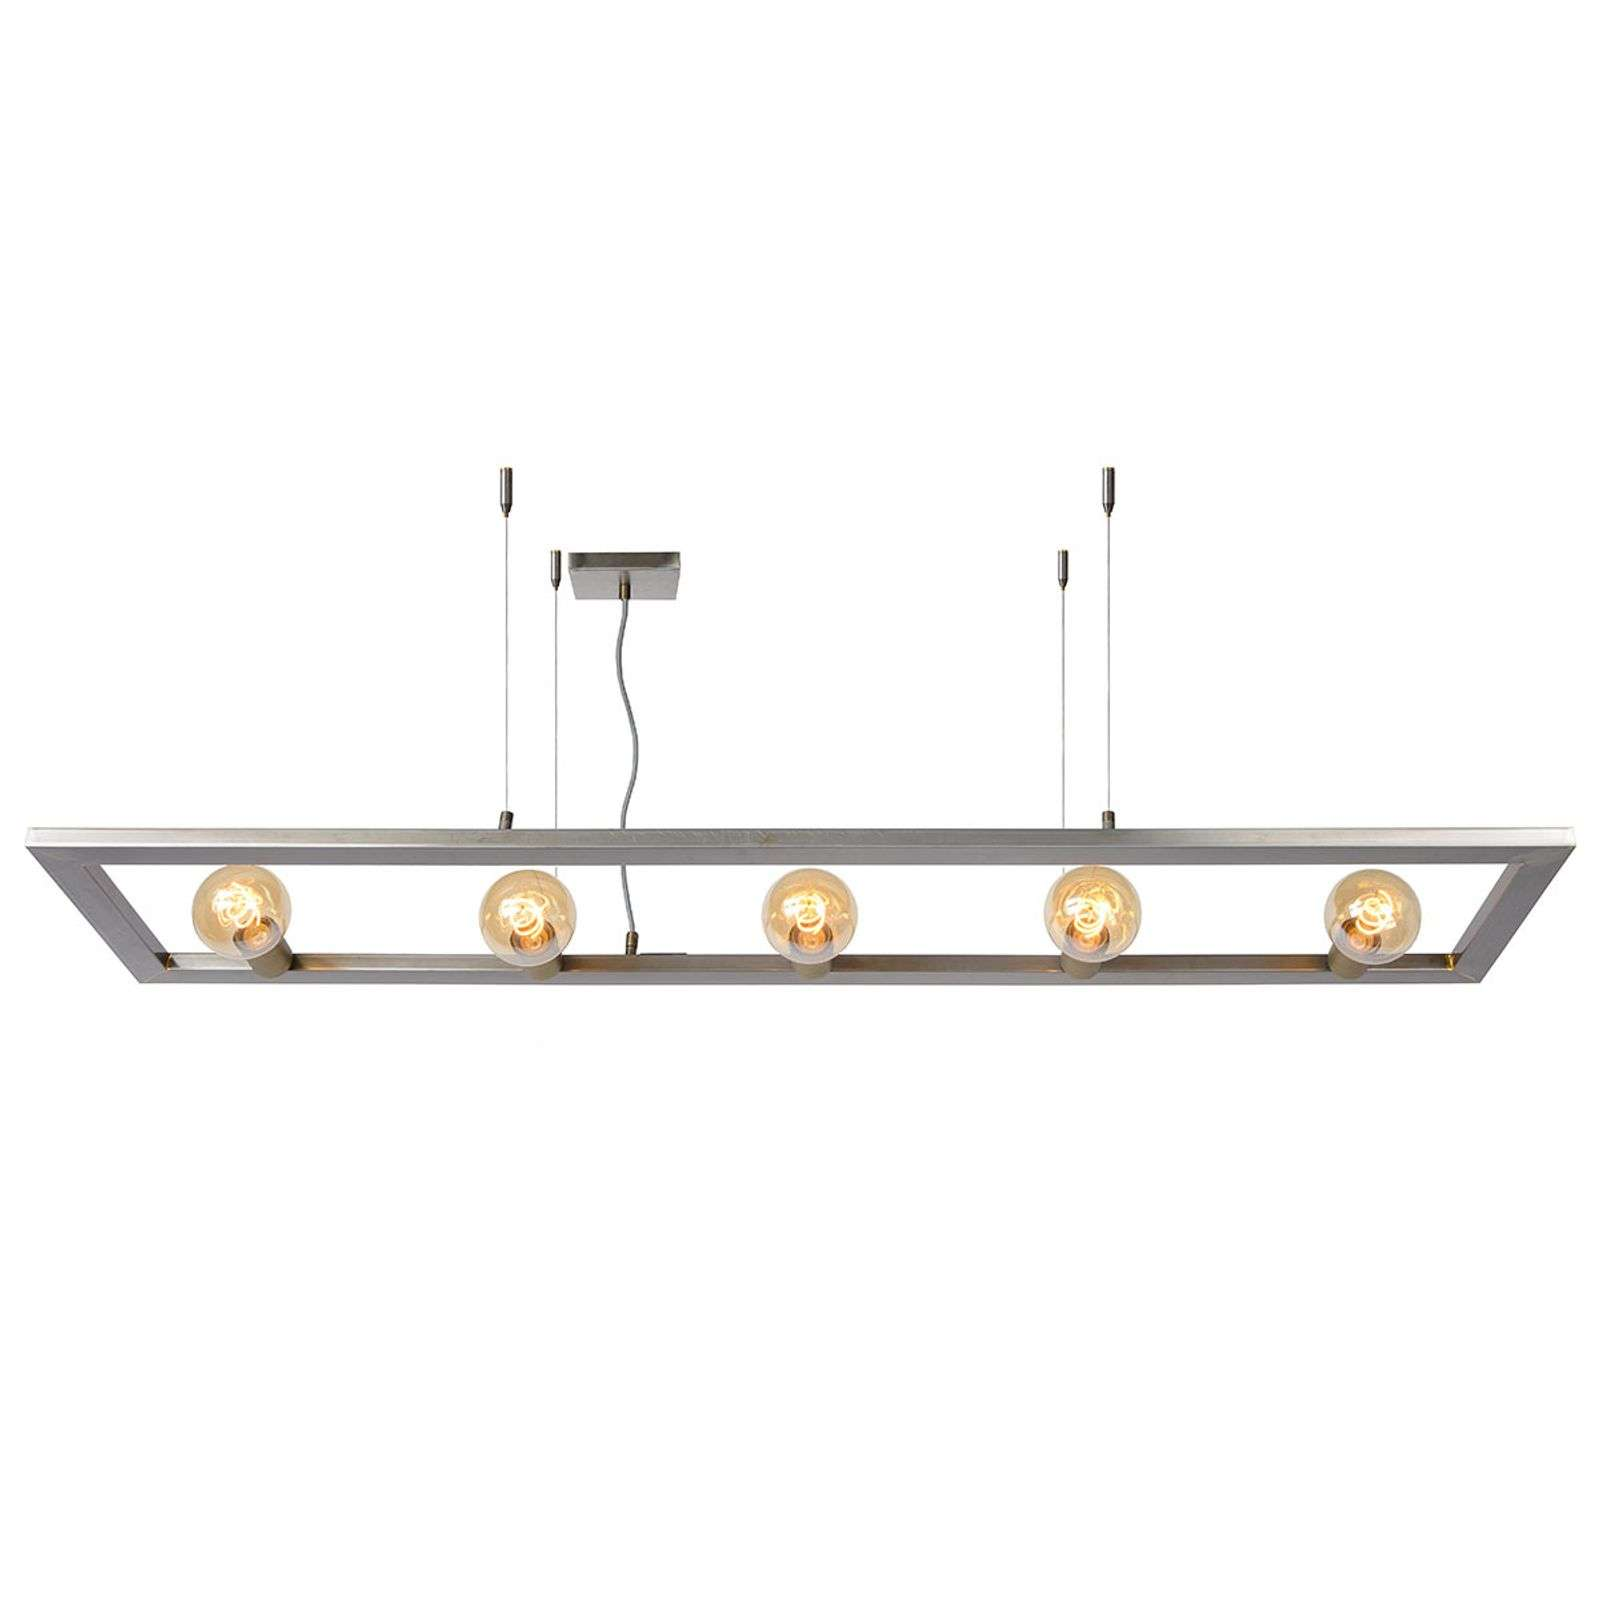 Suspension Thor cinq lampes, fer brut